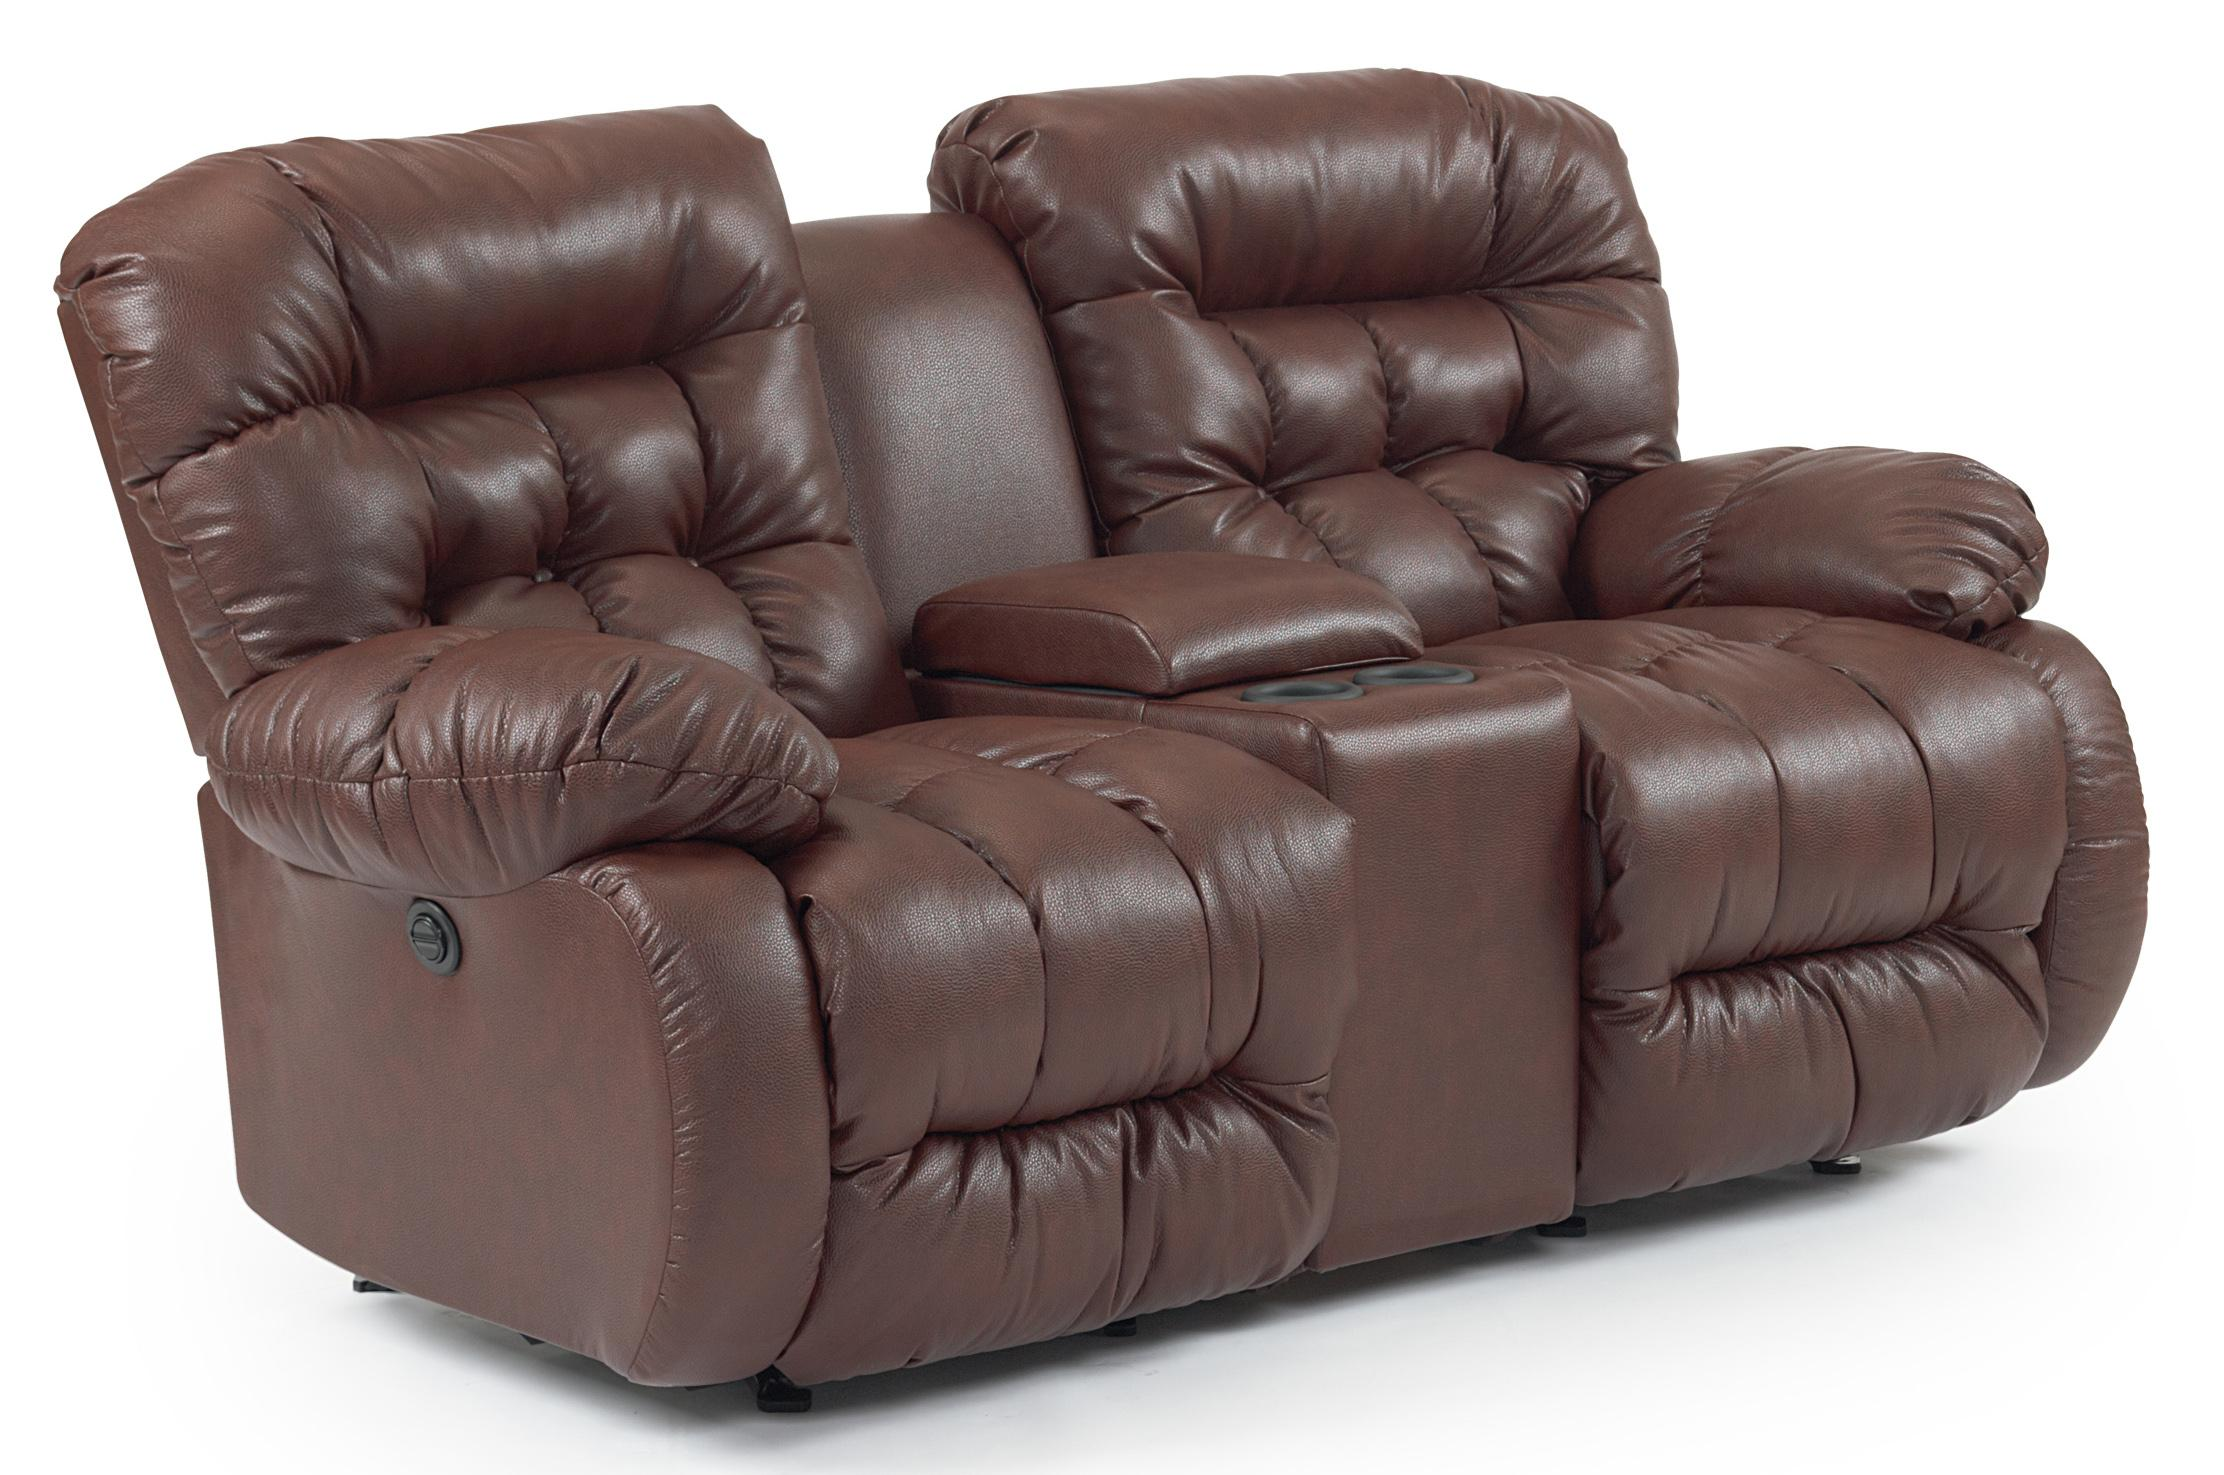 Best Home Furnishings Plusher L565cq4 Space Saver Power Reclining Loveseat With Drink Console